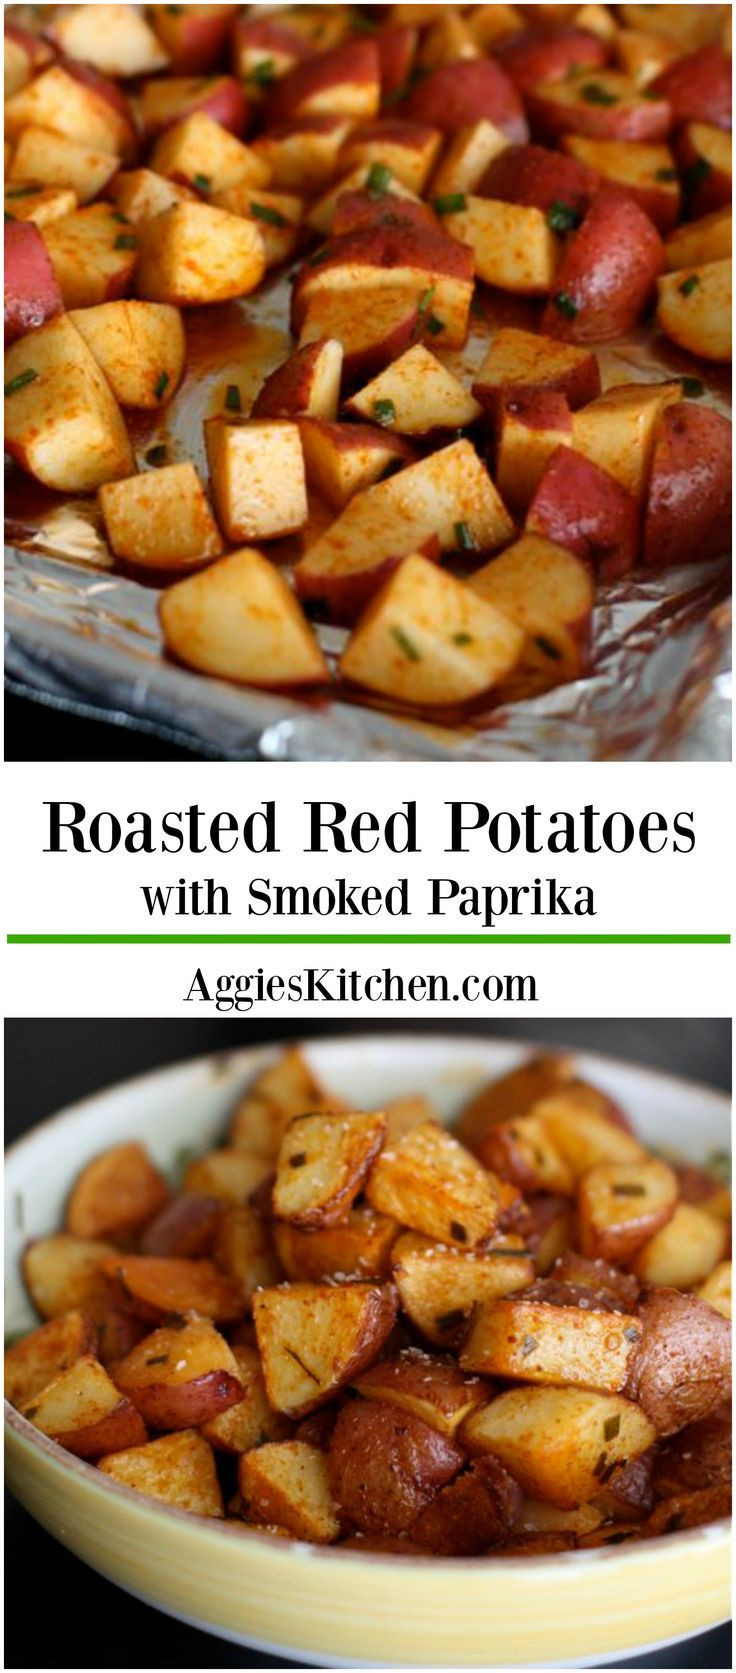 Healthy Roasted Red Potatoes  Roasted Red Potatoes with Smoked Paprika Recipe